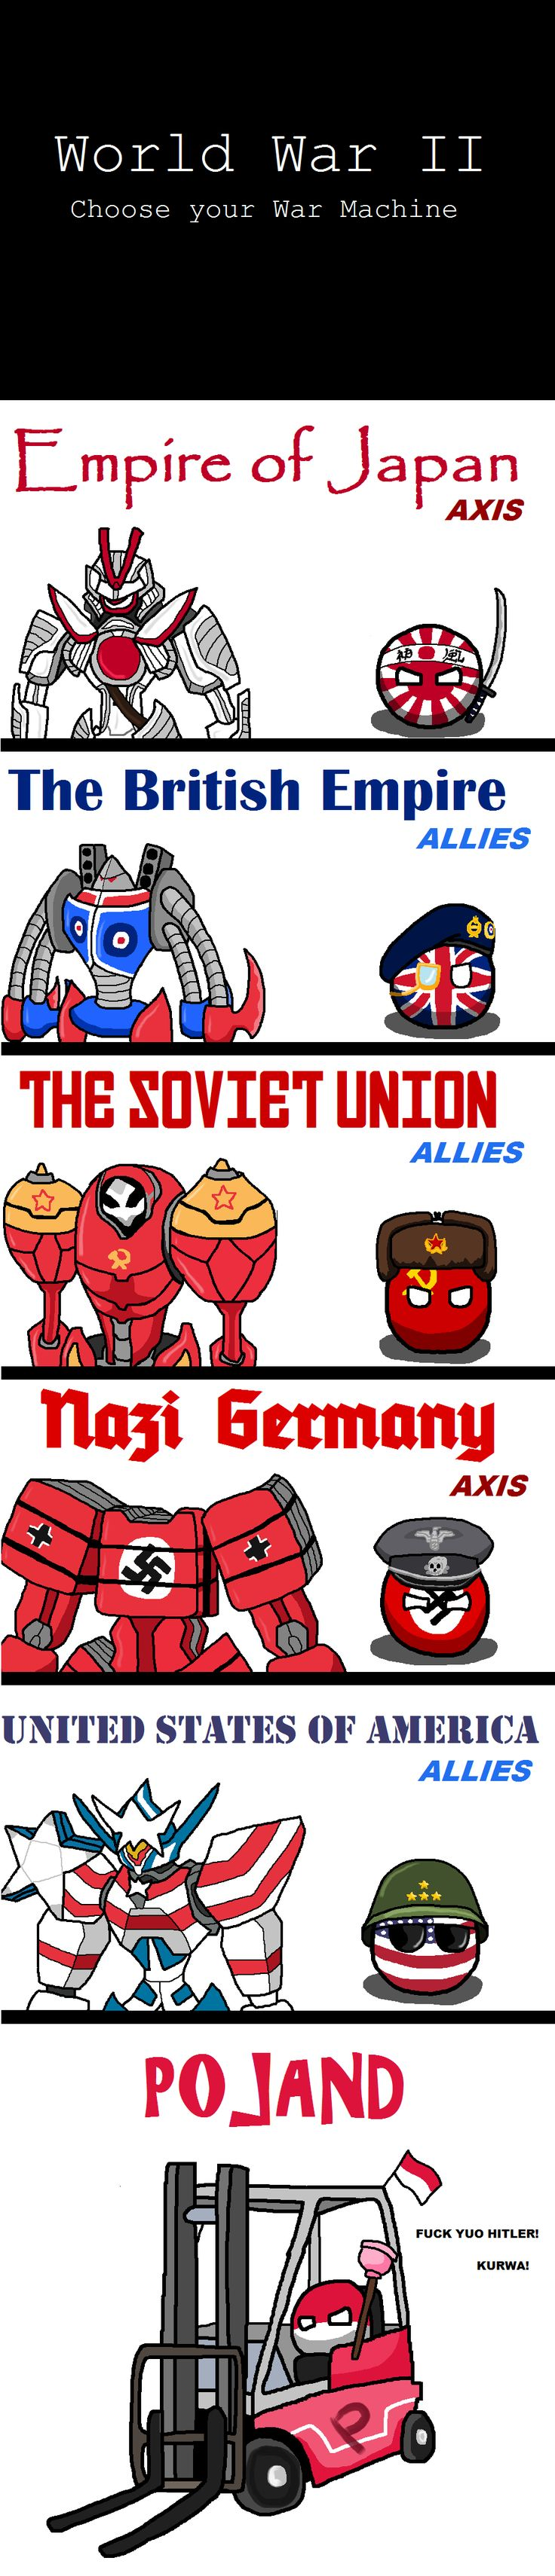 War Machine ( Japan, UK, Soviet, Germany, USA, Poland ) by Pan Aaron #polandball…